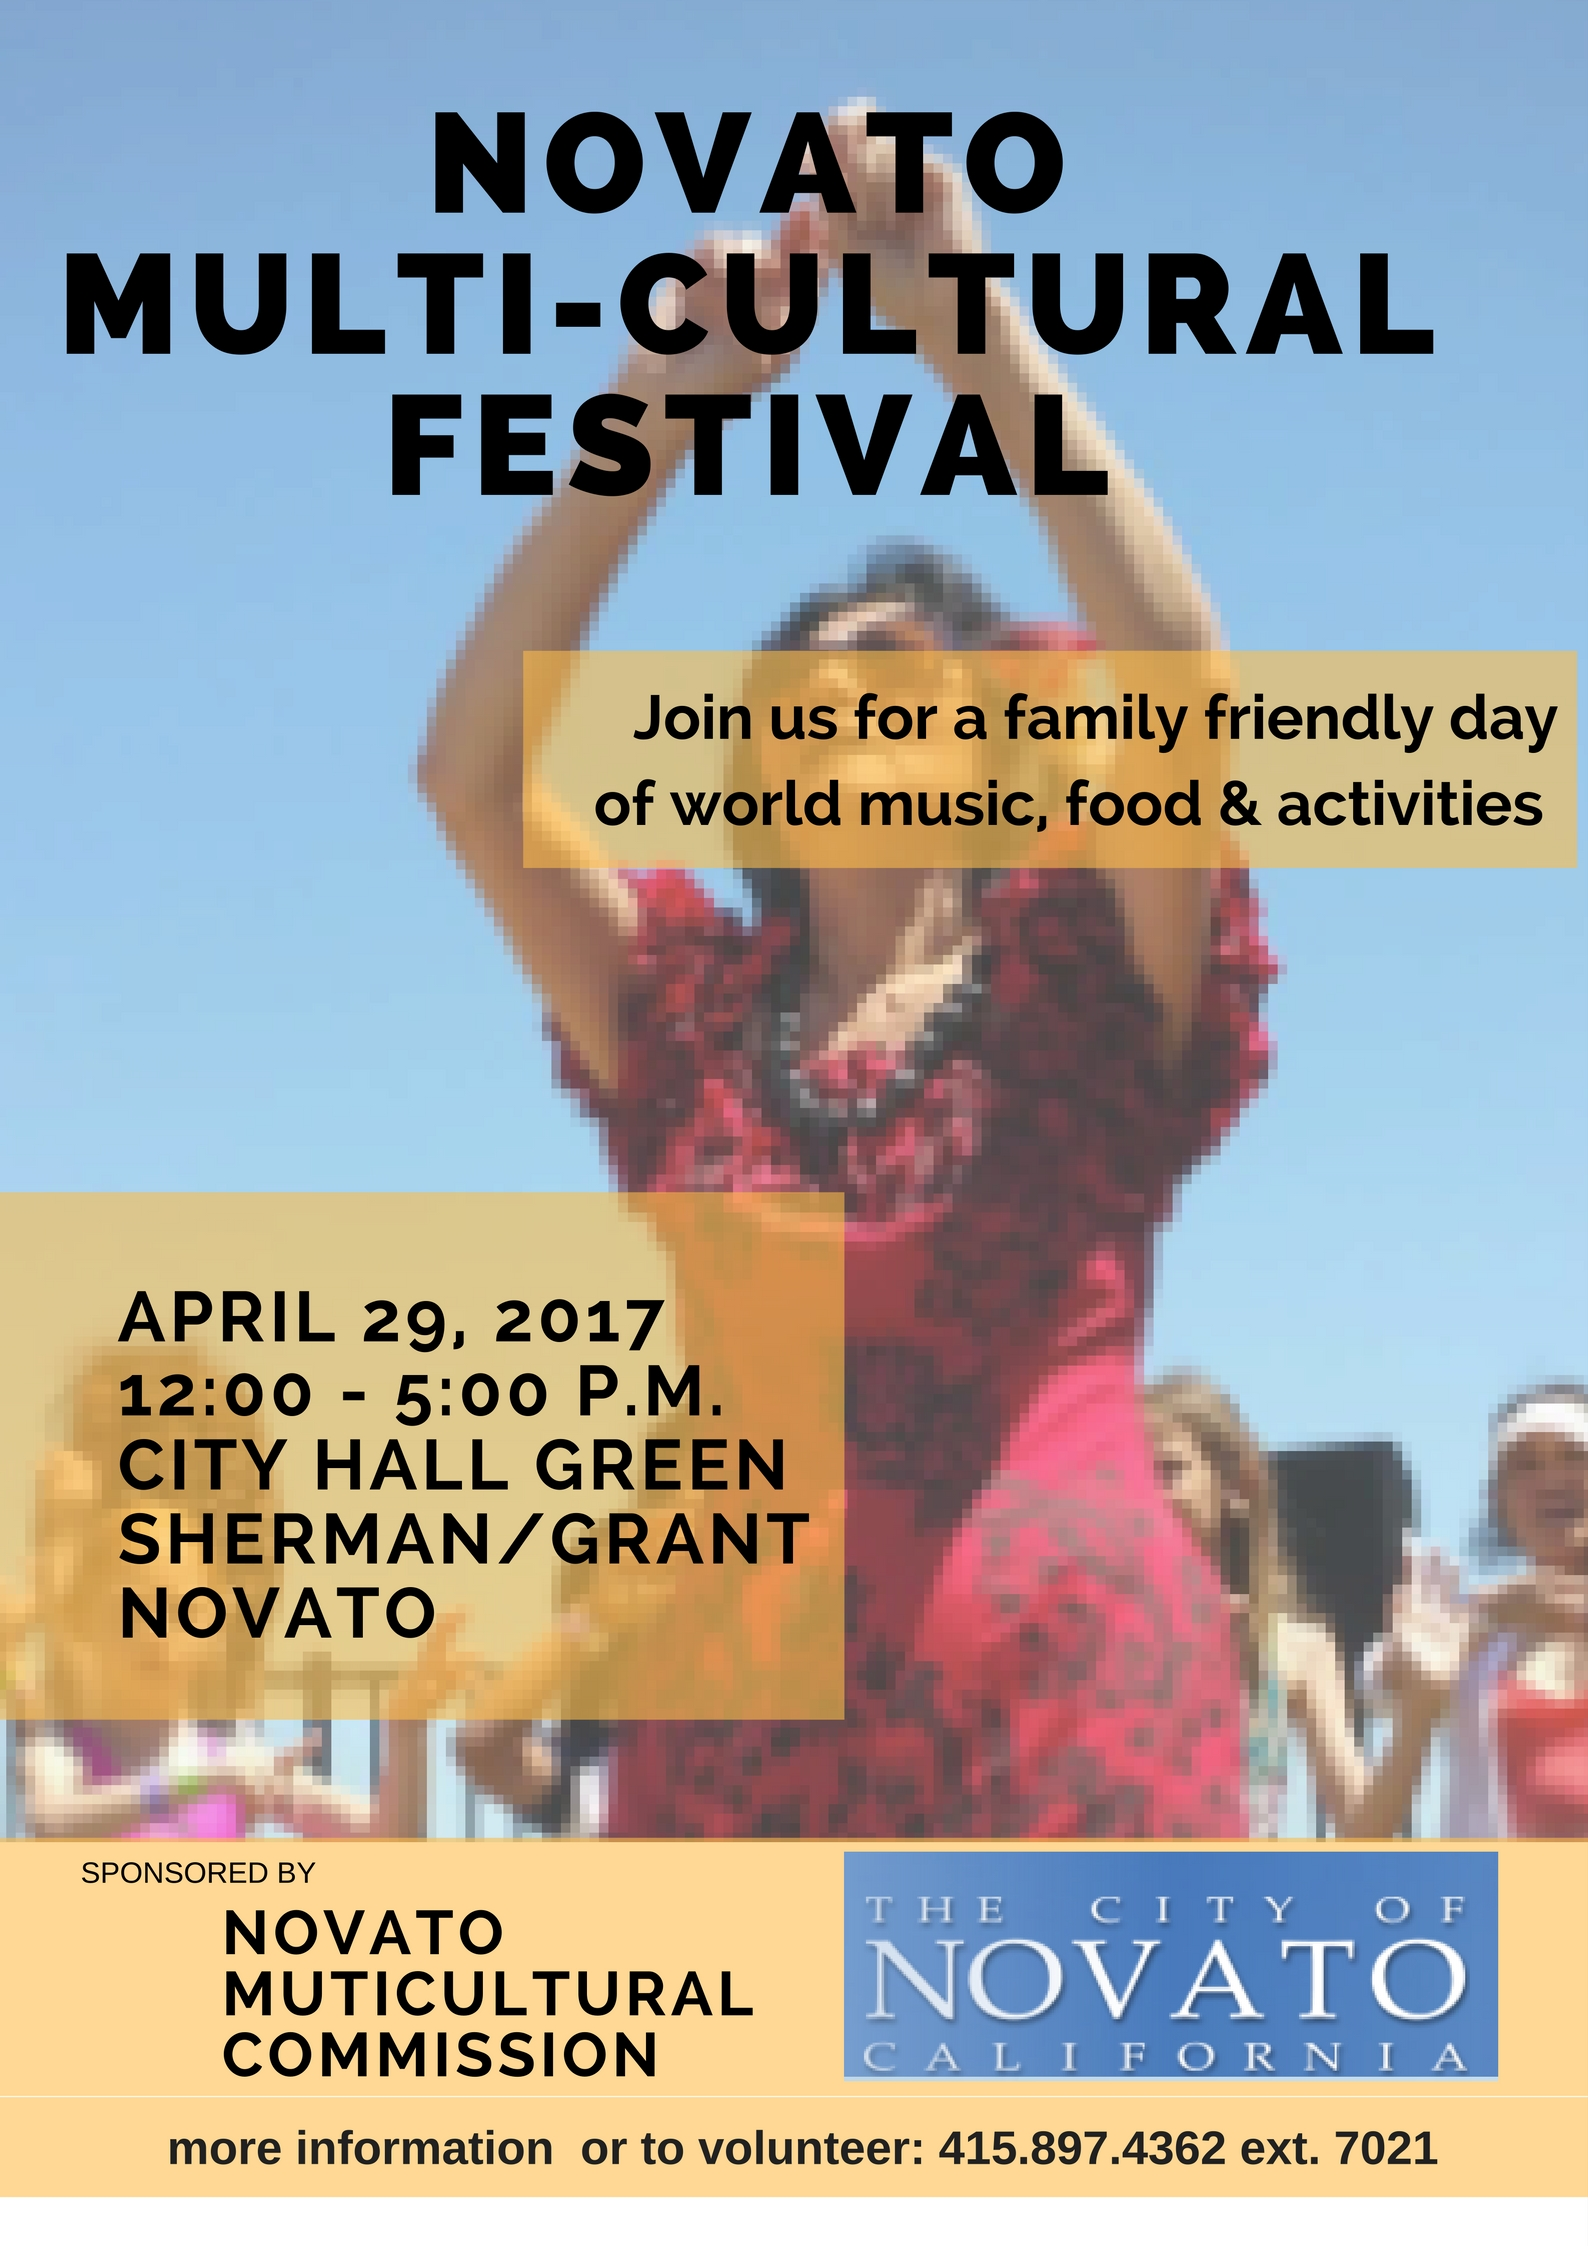 Image of Multicultural Advisory Commission Festival flyer